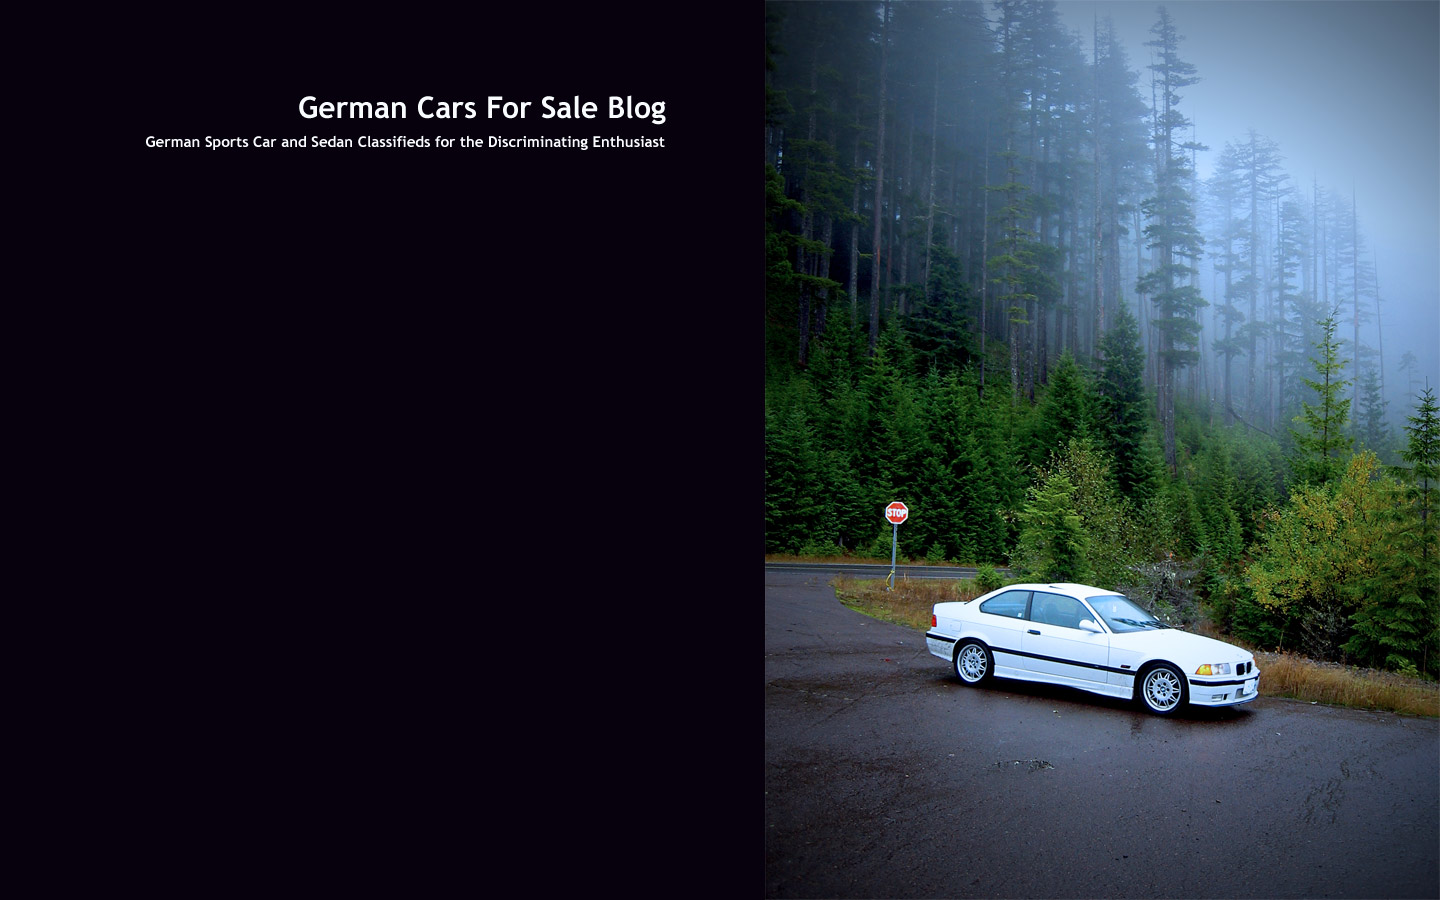 Bmw E36 M3 In Alpine White Wallpapers German Cars For Sale Blog